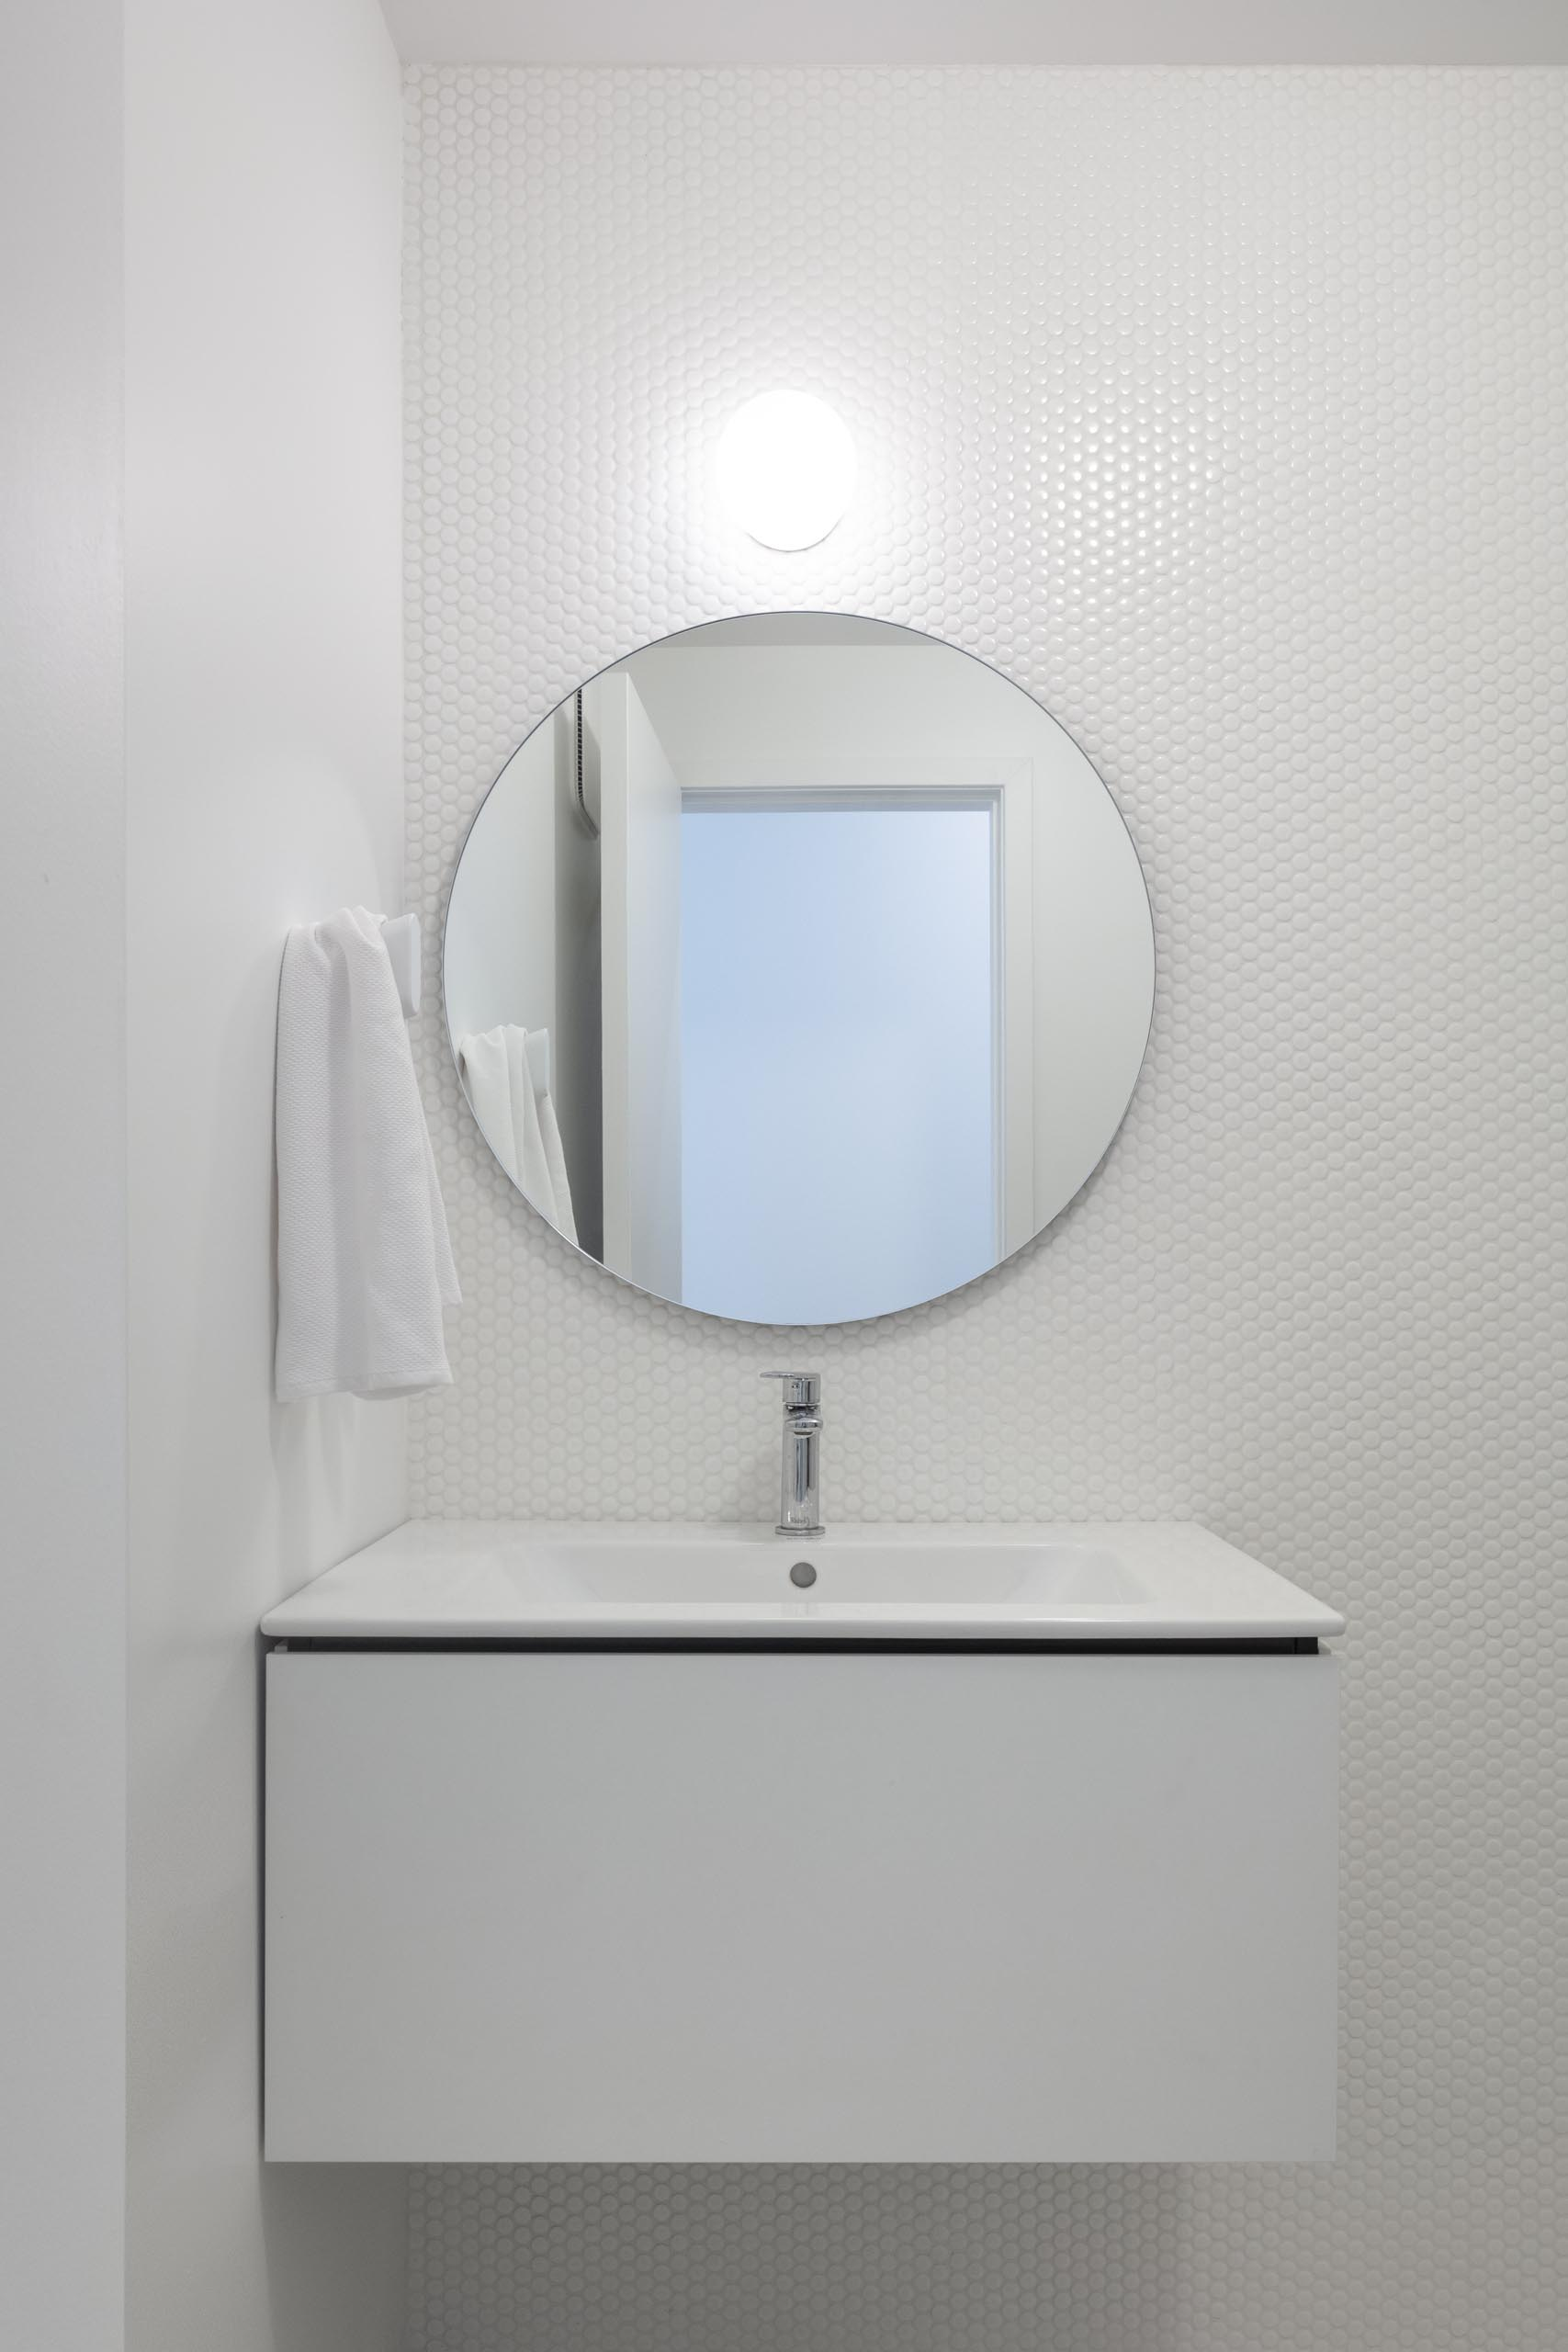 A modern white bathroom with white penny tiles and round mirror.